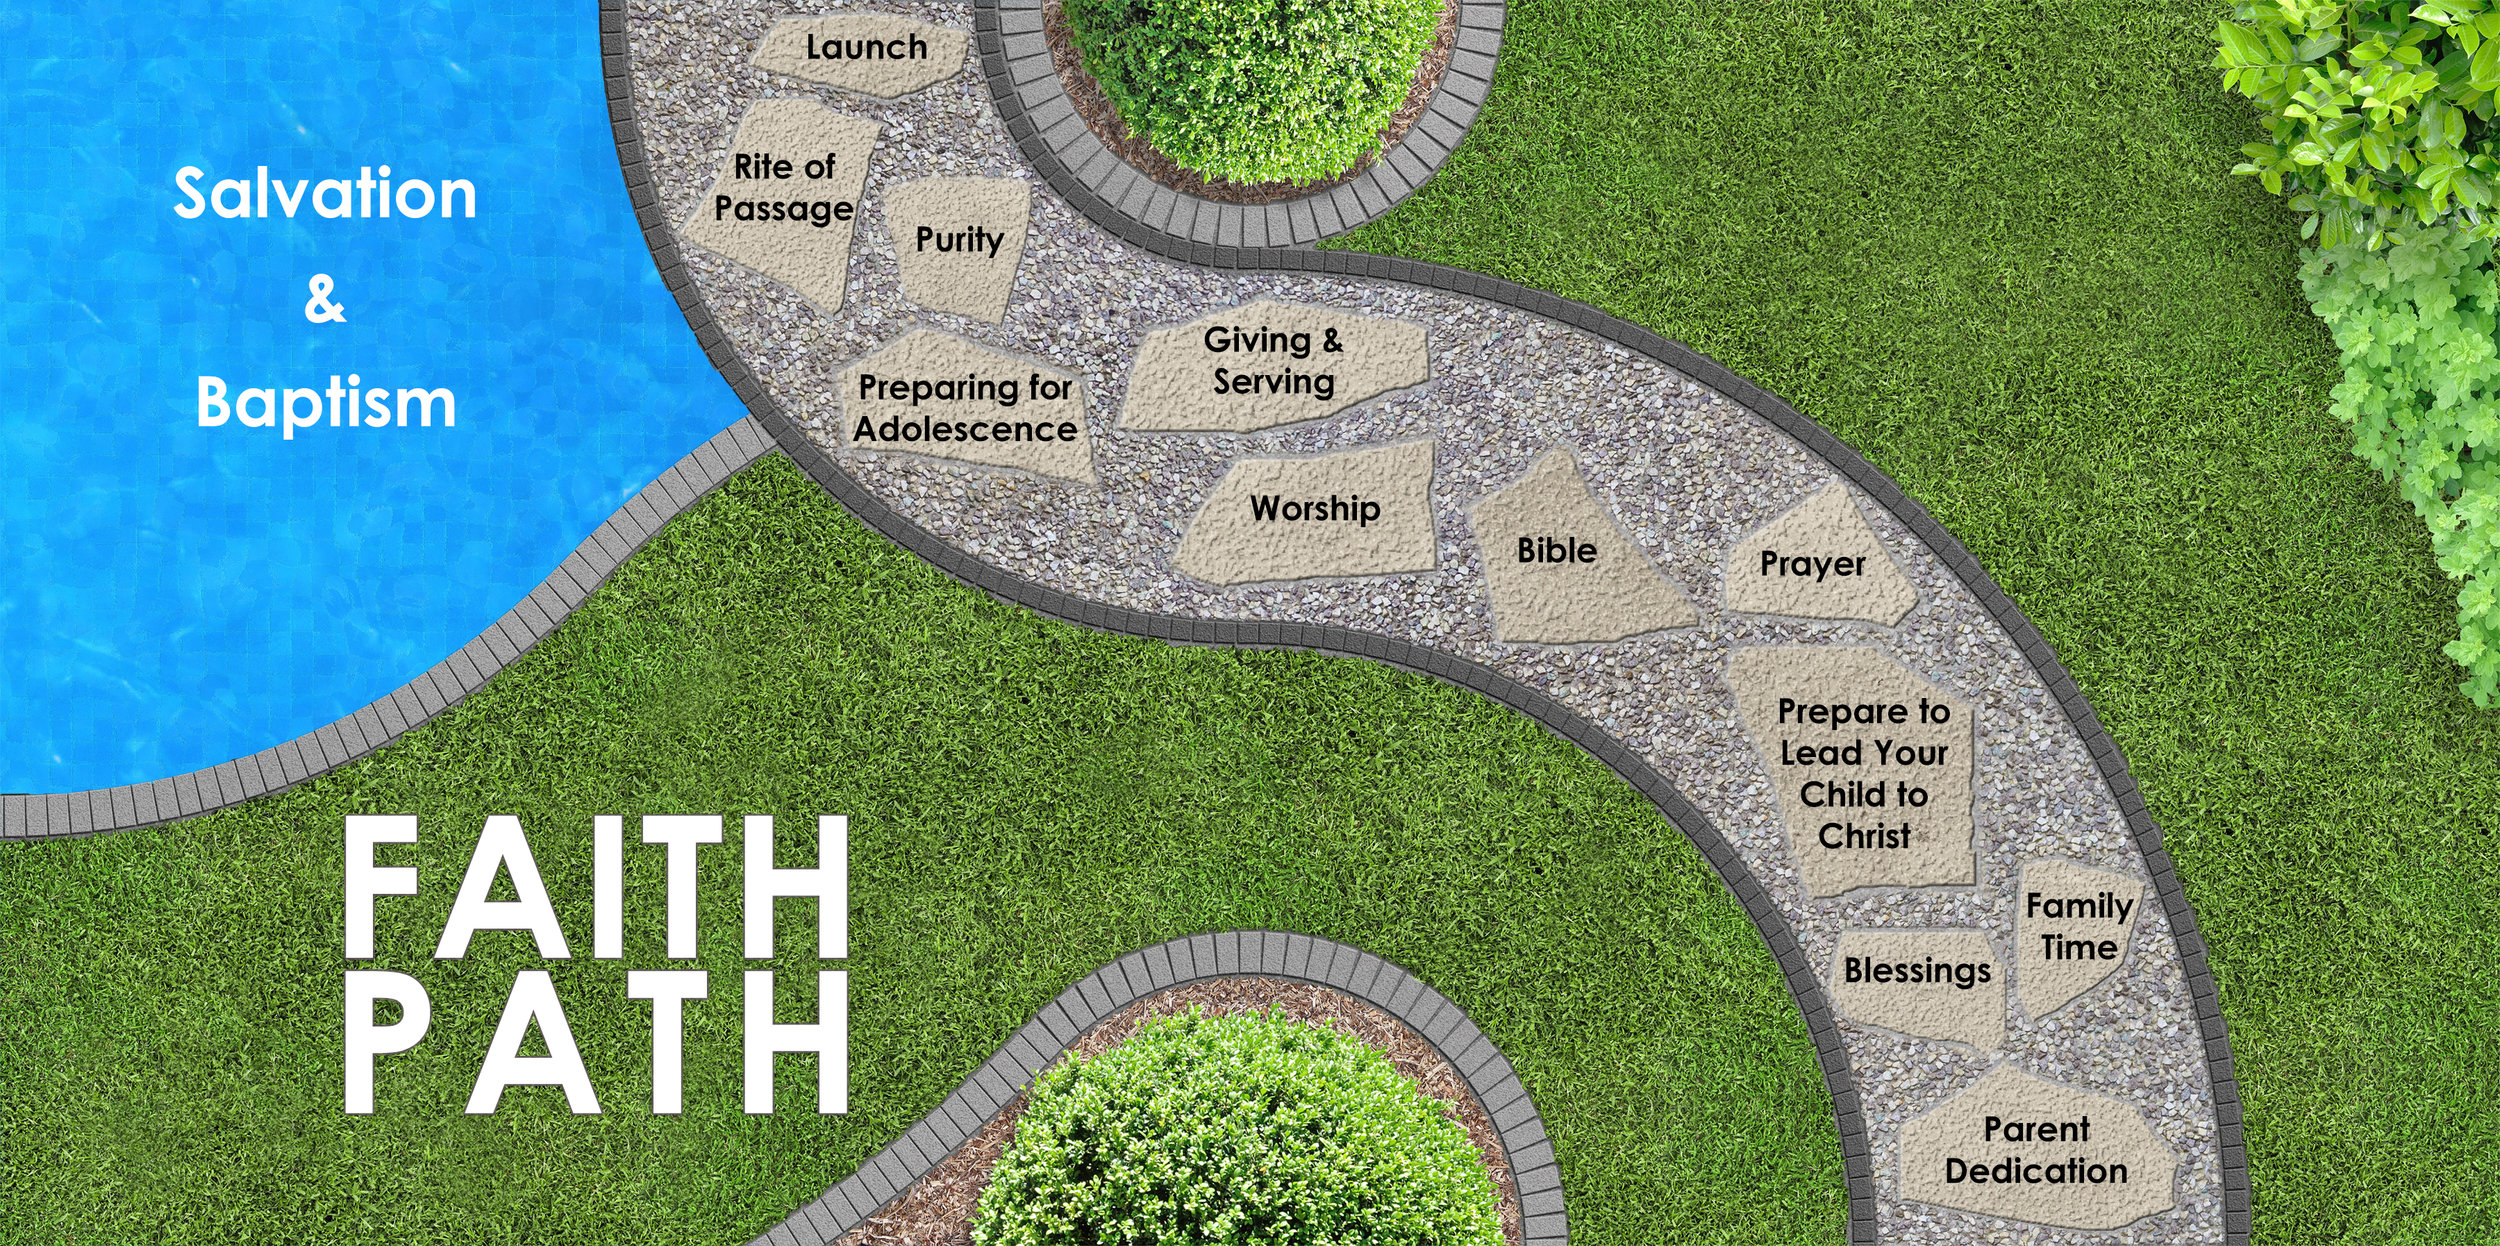 Faith Path - Find resources for discipling your child(ren) at strategic points in their growth and development.